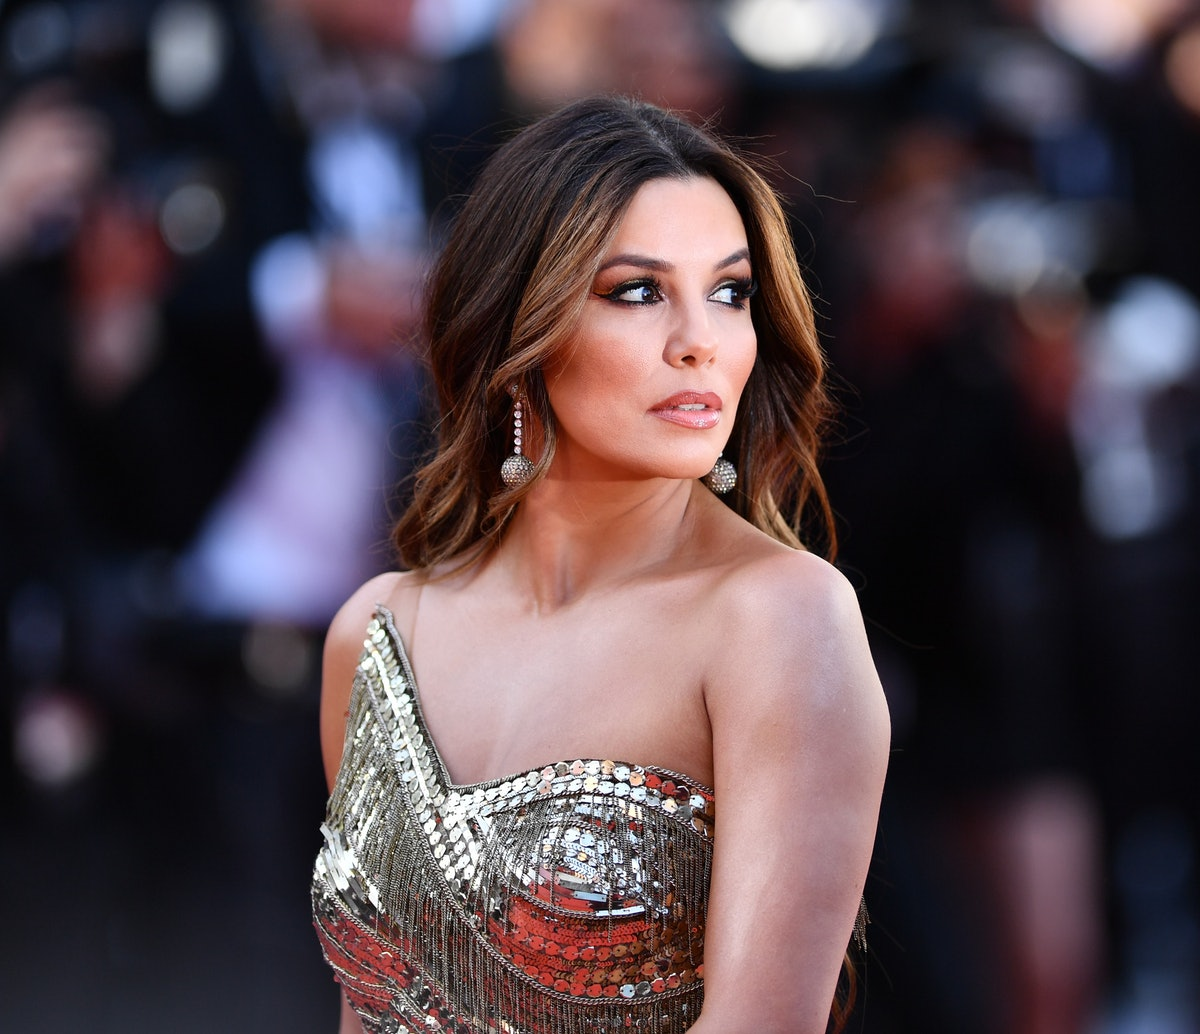 Eva Longoria is a kinky celebrity who likes to be tied up with scarves.